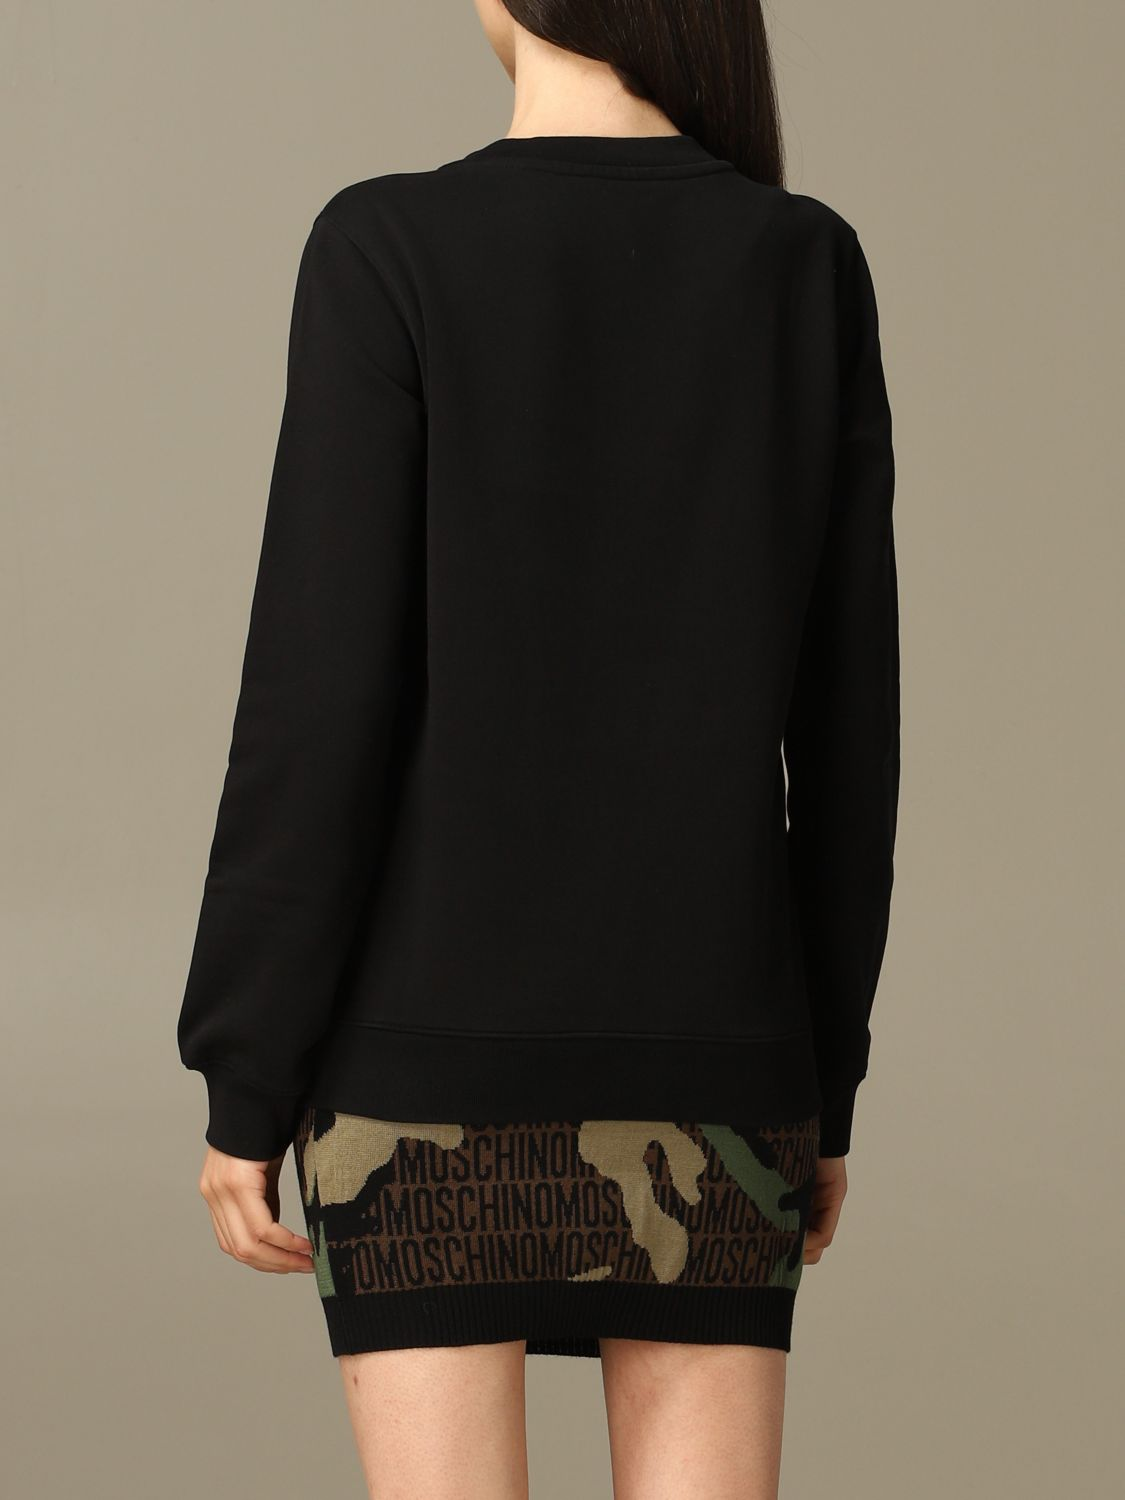 Sweatshirt Moschino Couture: Moschino Couture sweatshirt with Teddy Bear patch black 3